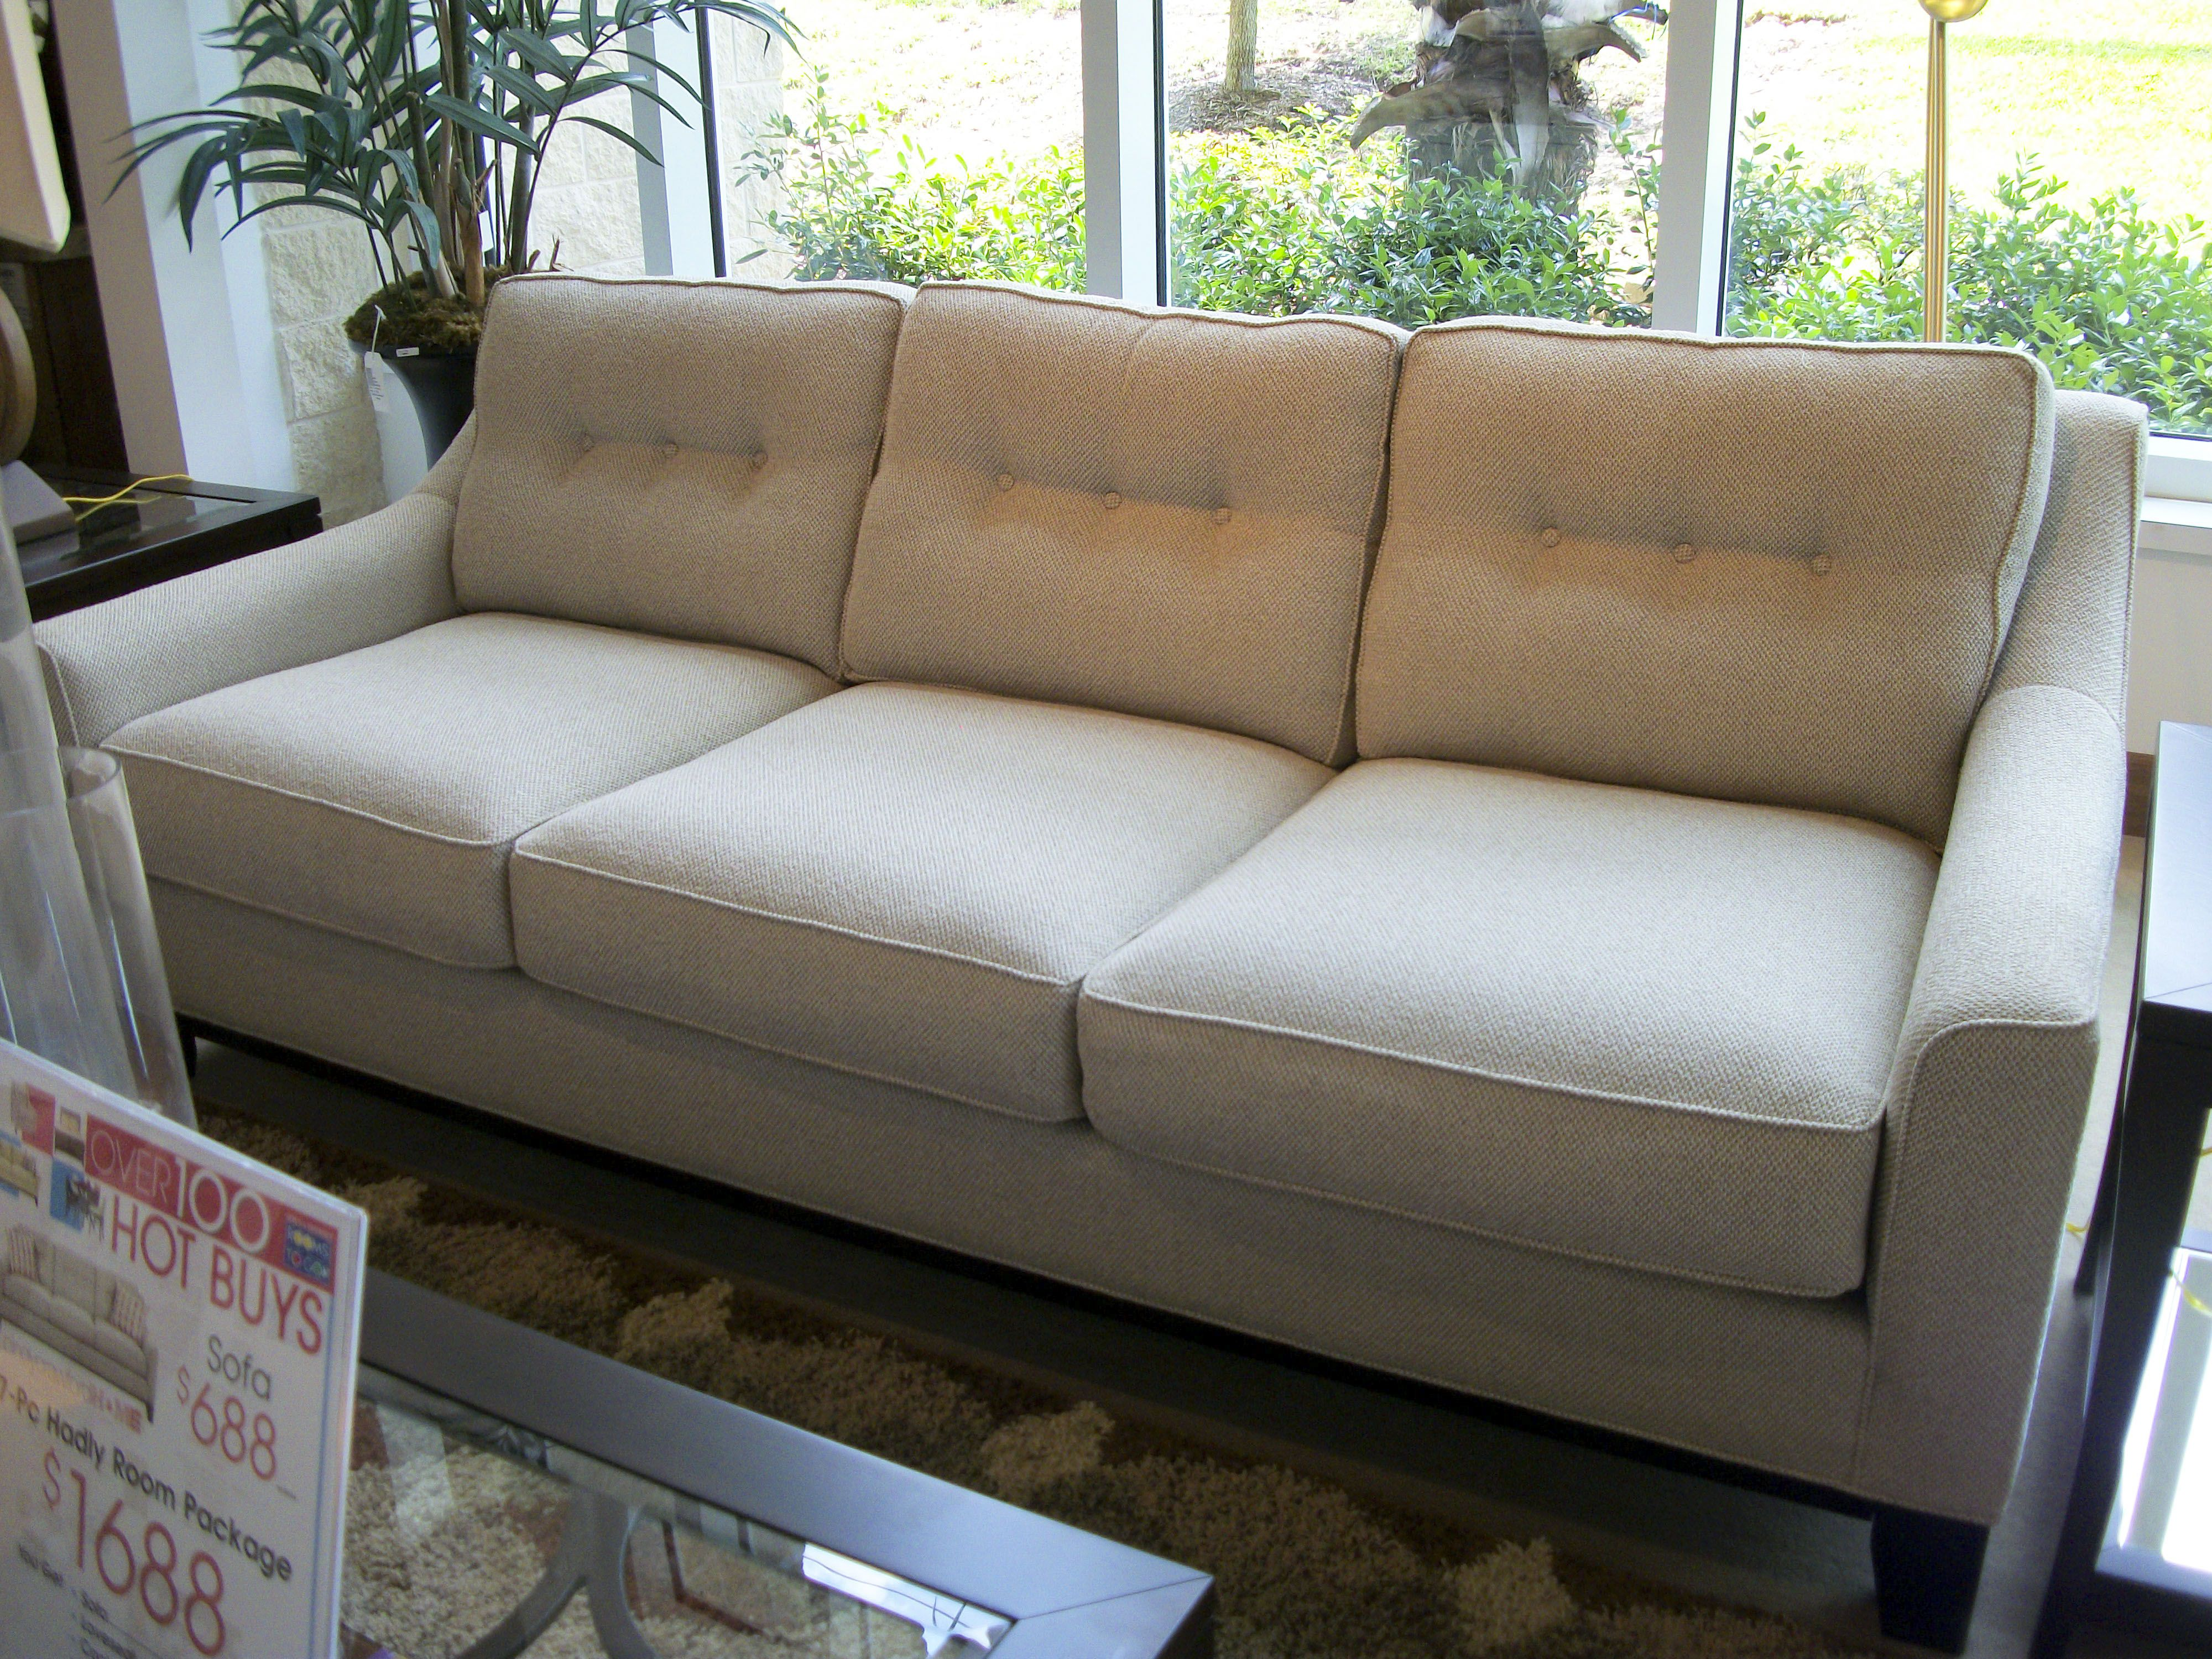 Cool Burlap Couch , Unique Burlap Couch 74 With Additional Contemporary Sofa  Inspiration With Burlap Couch